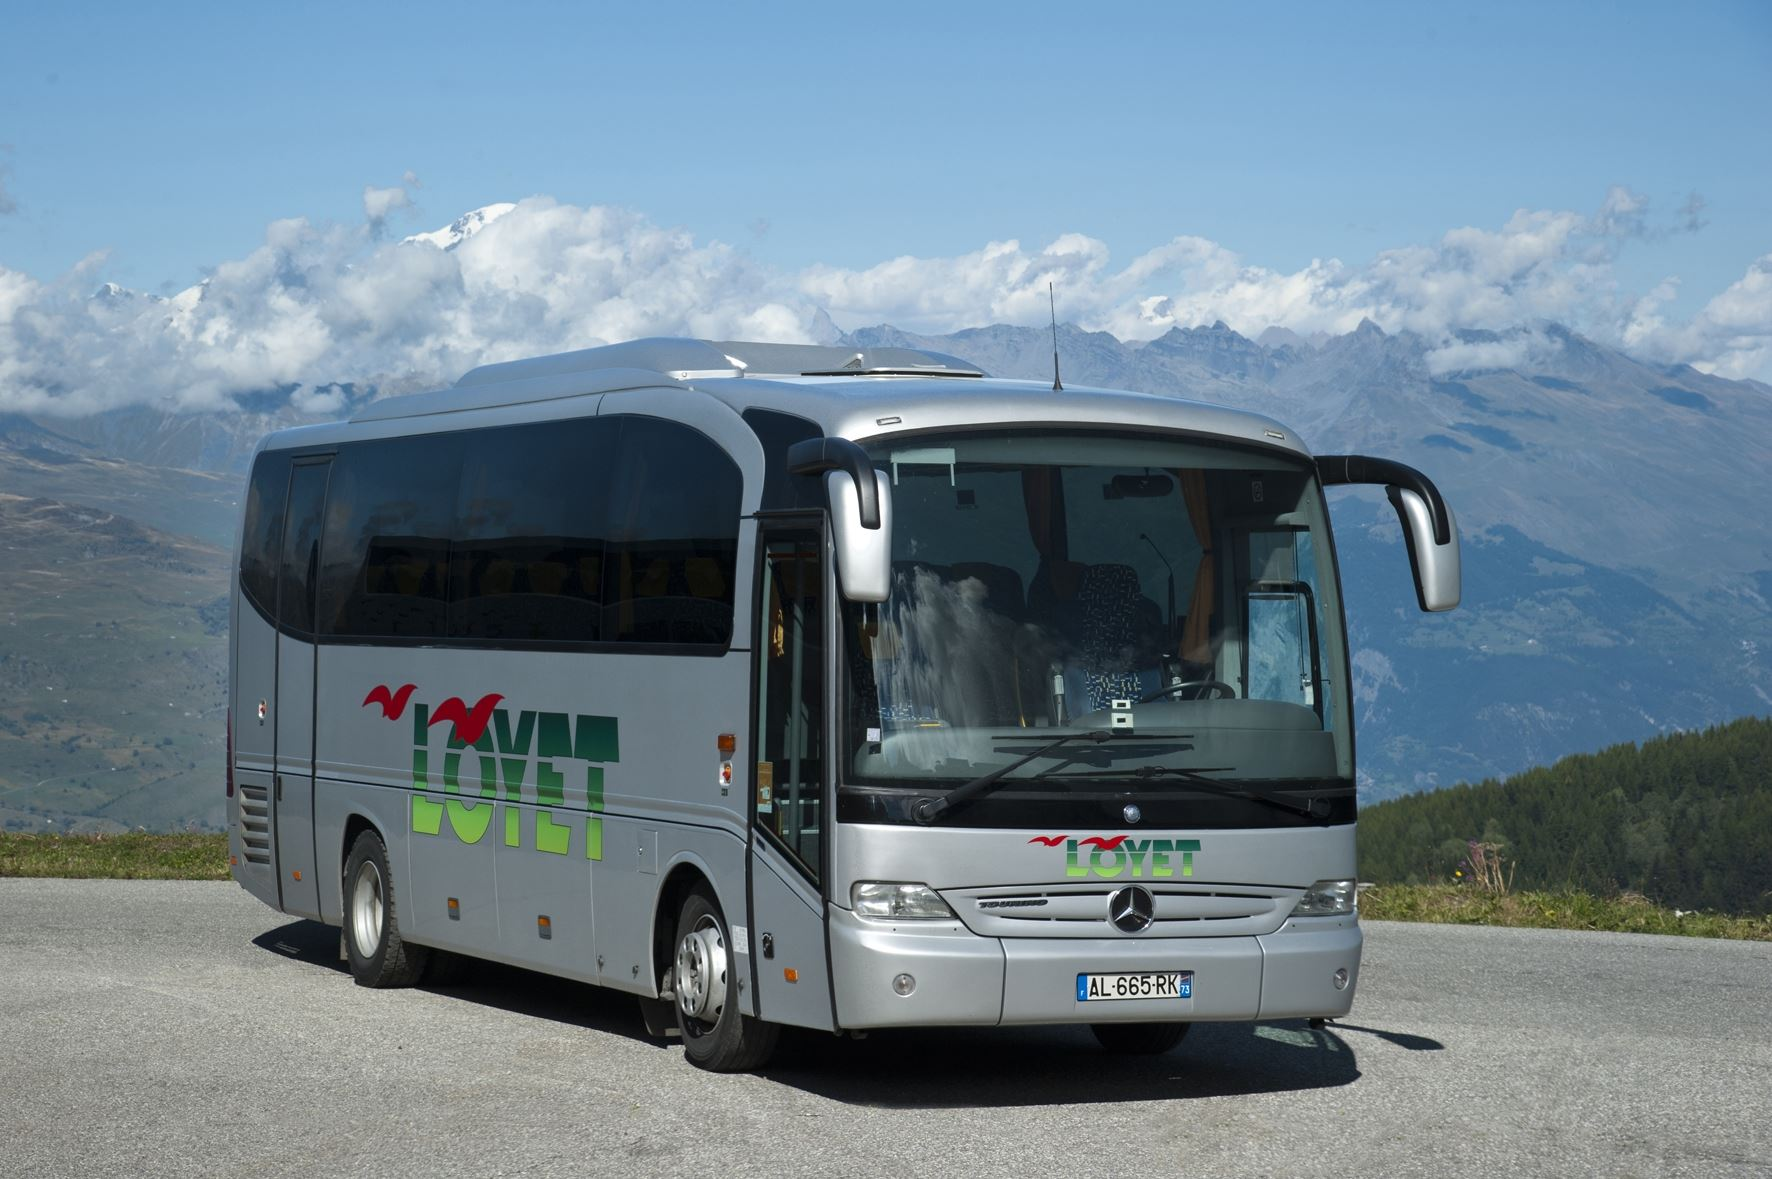 FRIDAY BUS TRANSFER RETURN TICKET - FROM GENEVA AIRPORT TO VAL THORENS - 99€ PER TICKET